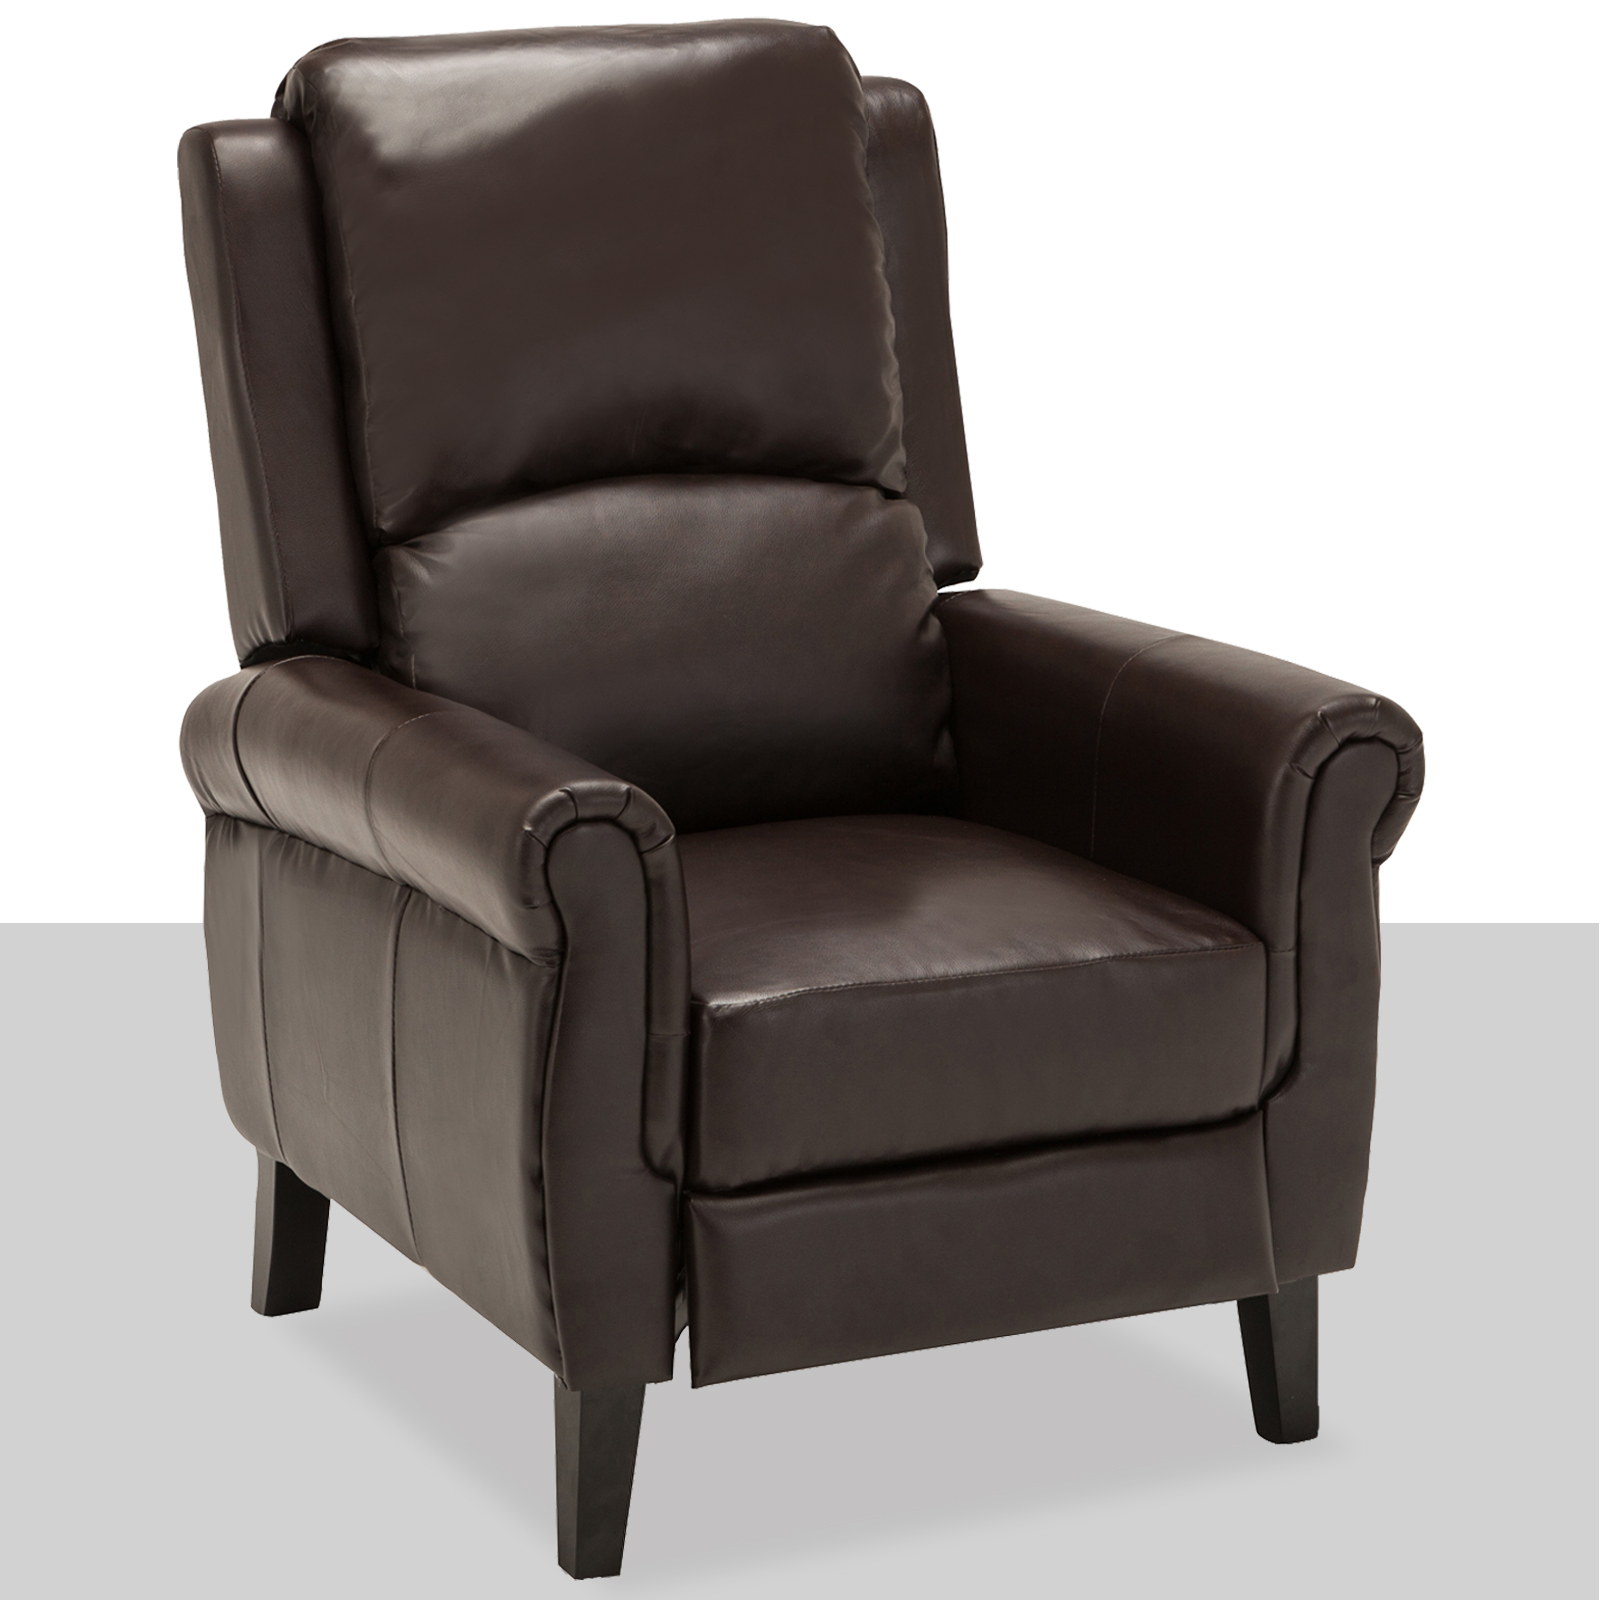 Brown Leather Recliner Armchair Accent Chair w/ Leg Rest ...